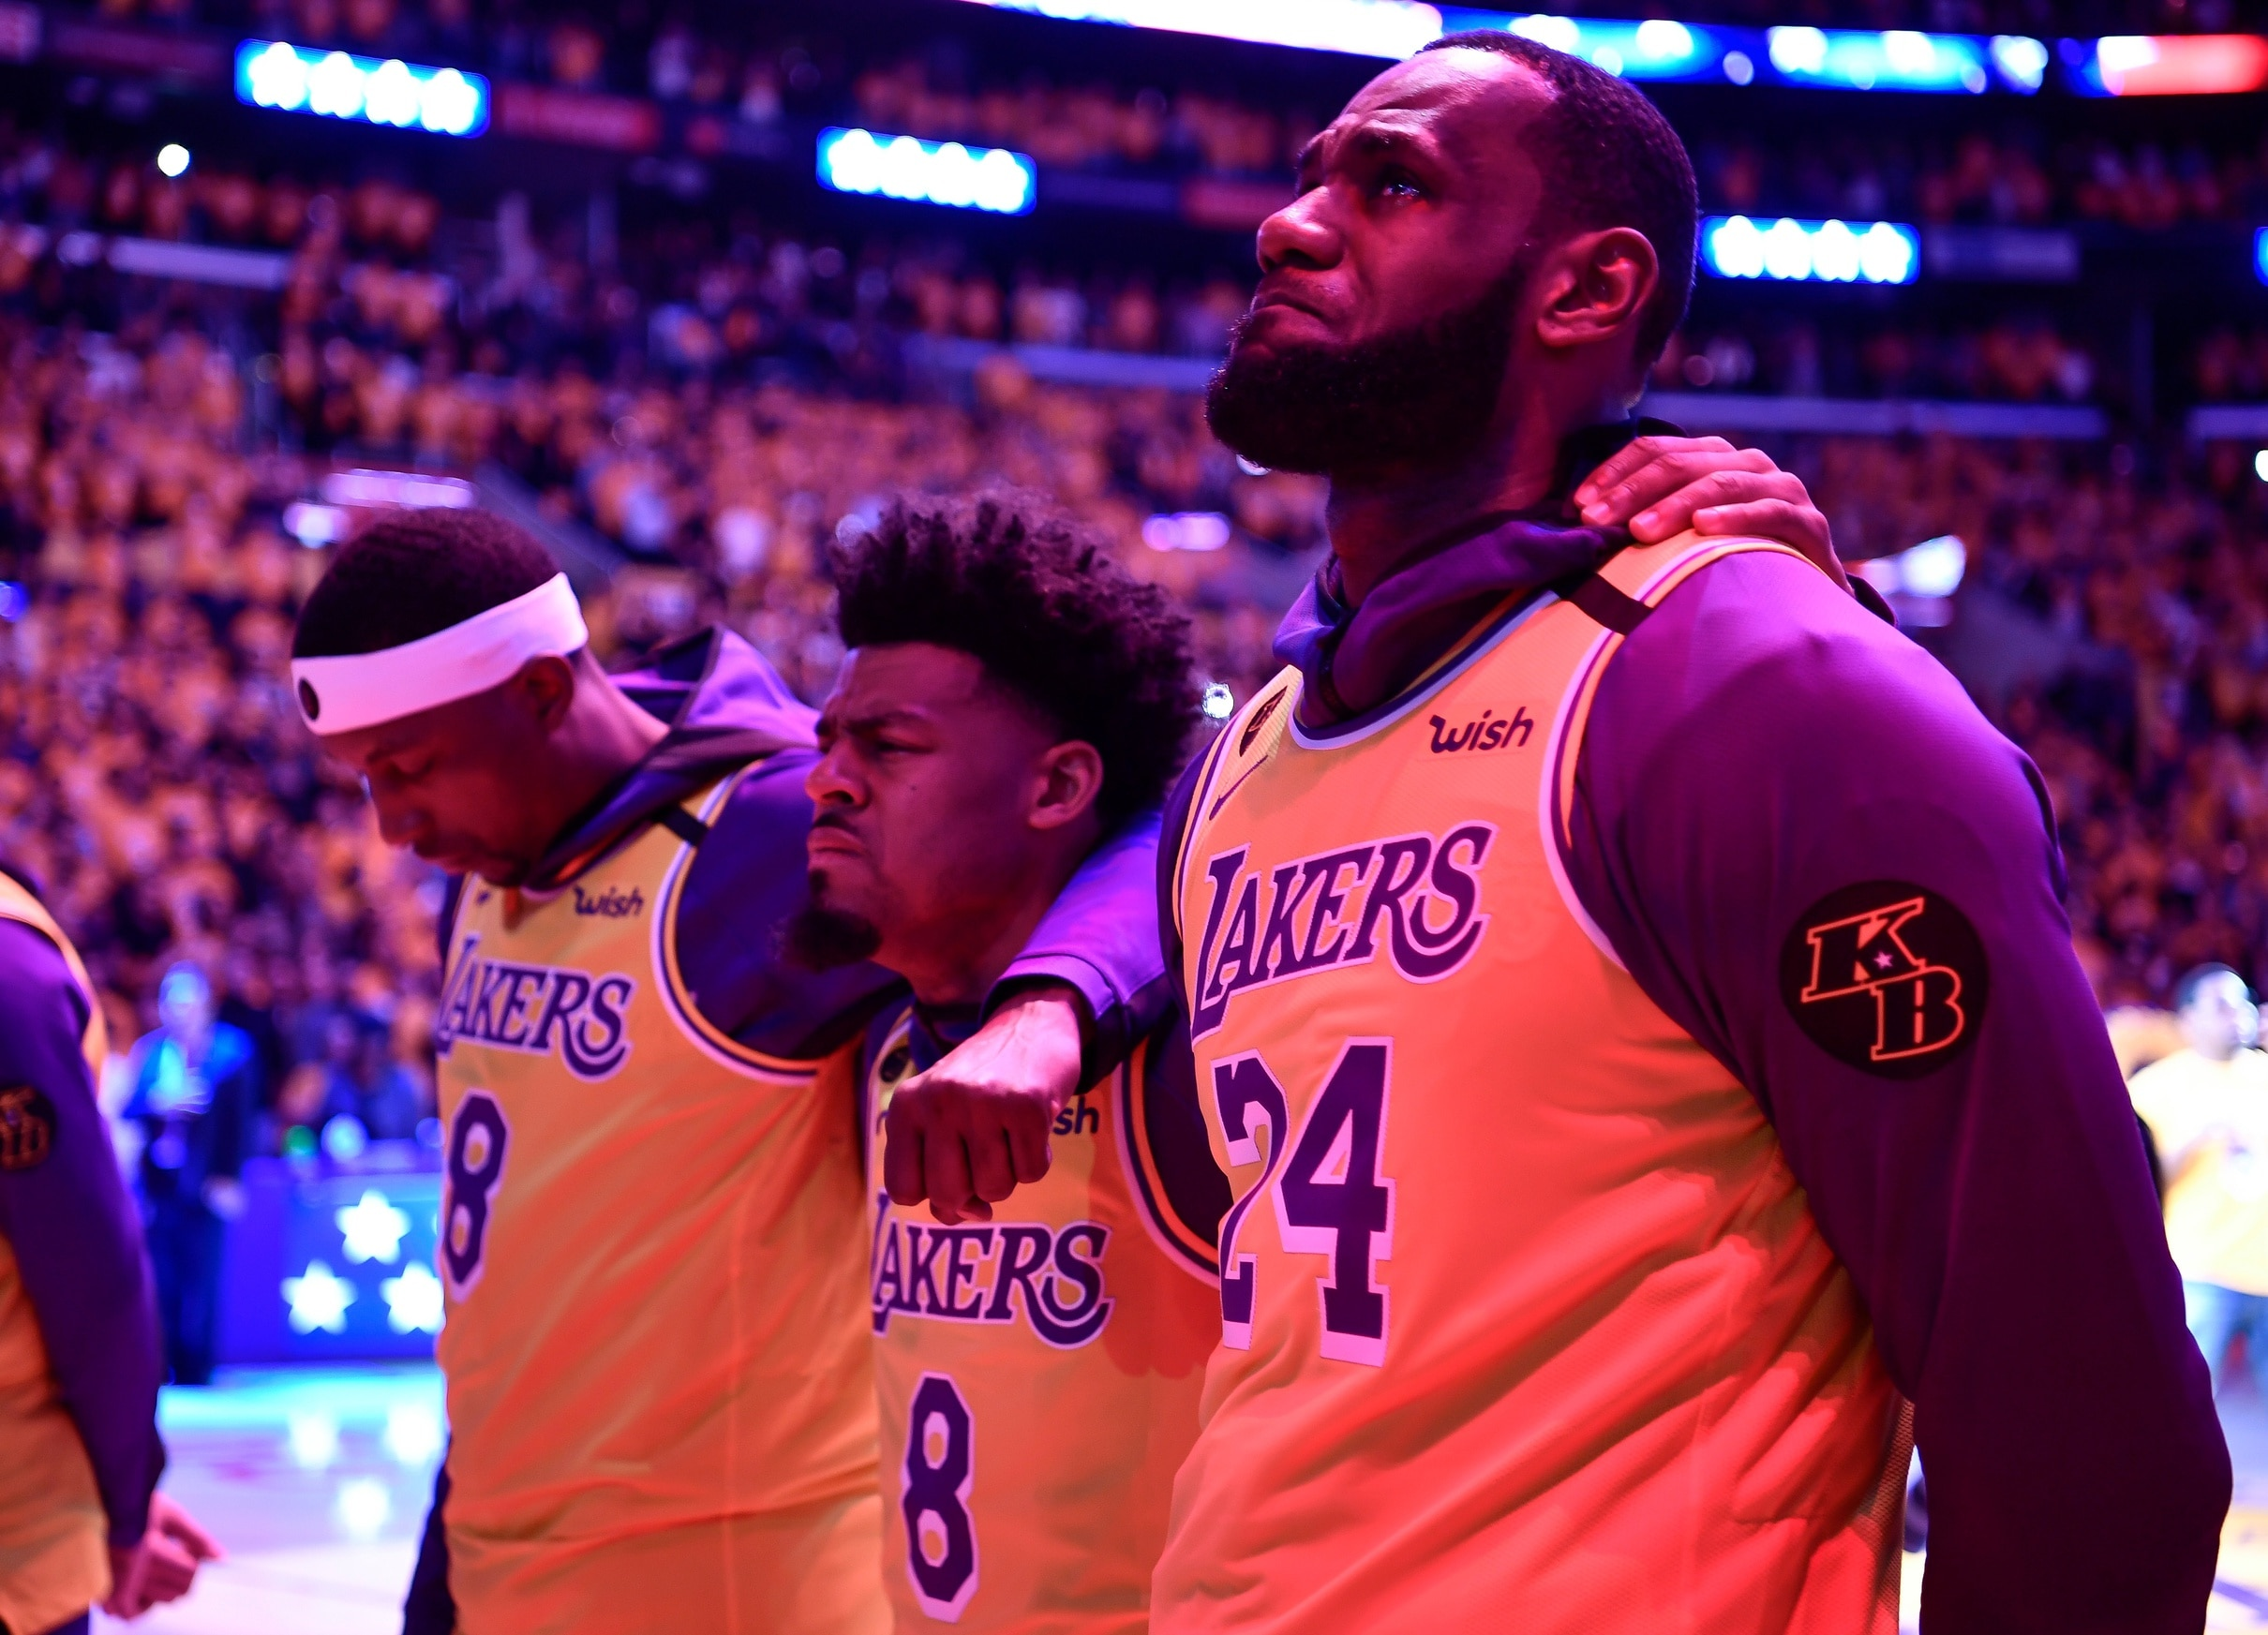 LOOK: Lakers to wear Black Mamba jerseys for Game 4 to honor Kobe ...